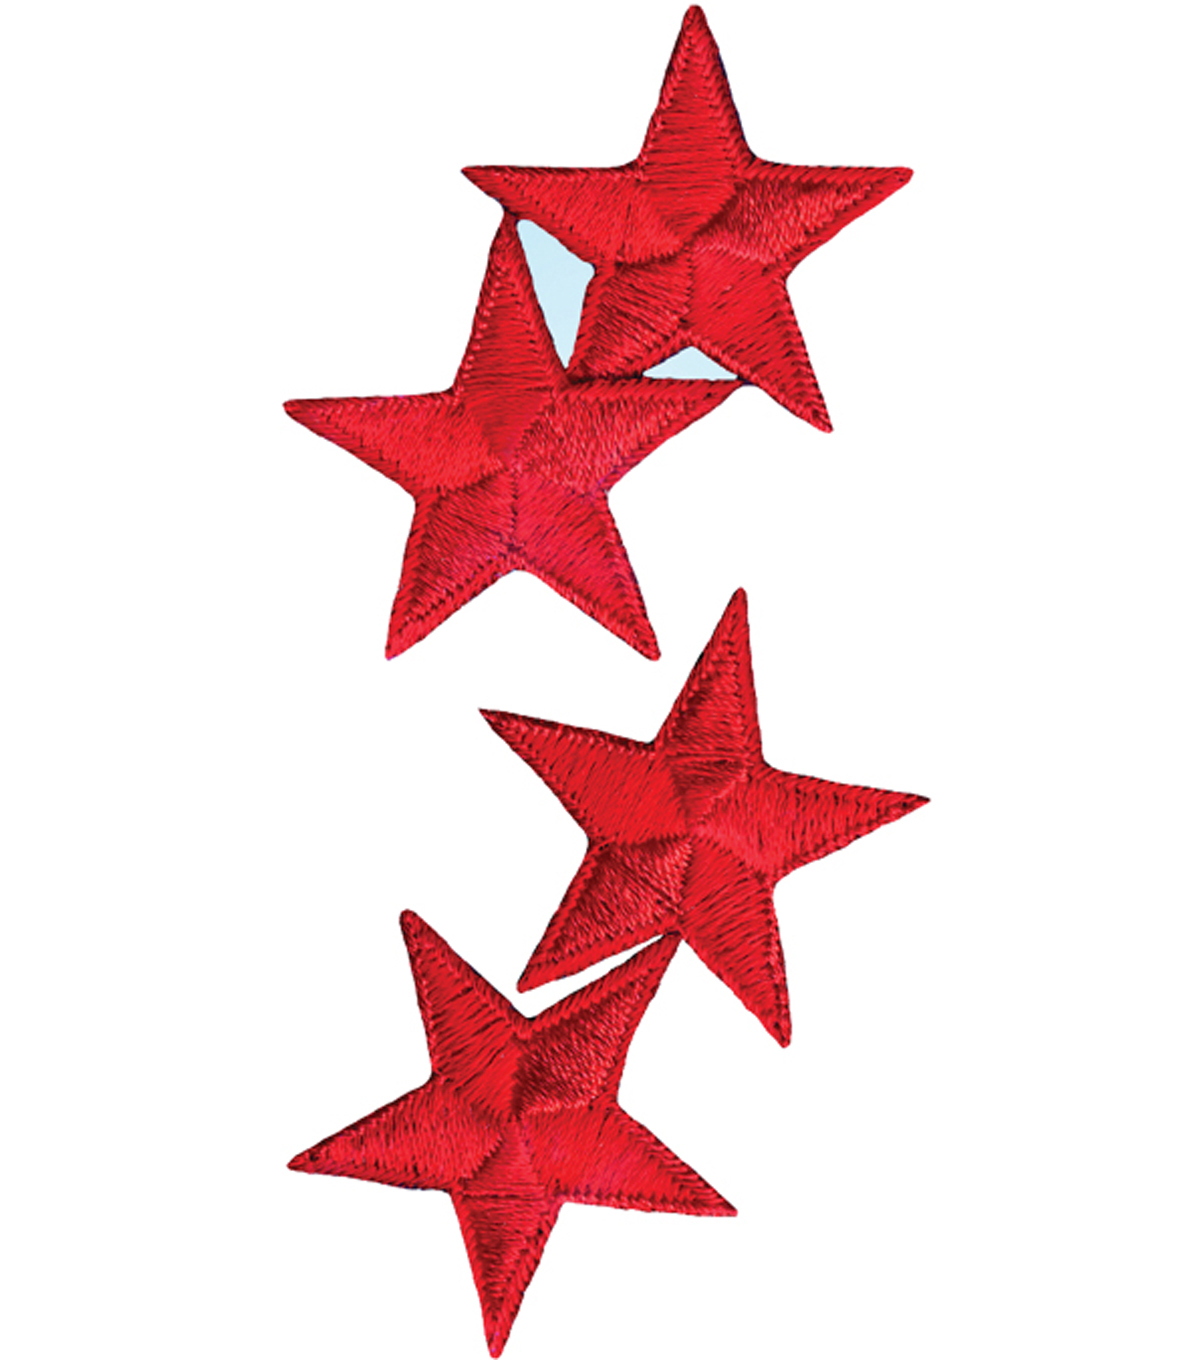 1200x1360 Iron On Appliques Red Stars 1 14 4pkg Joann